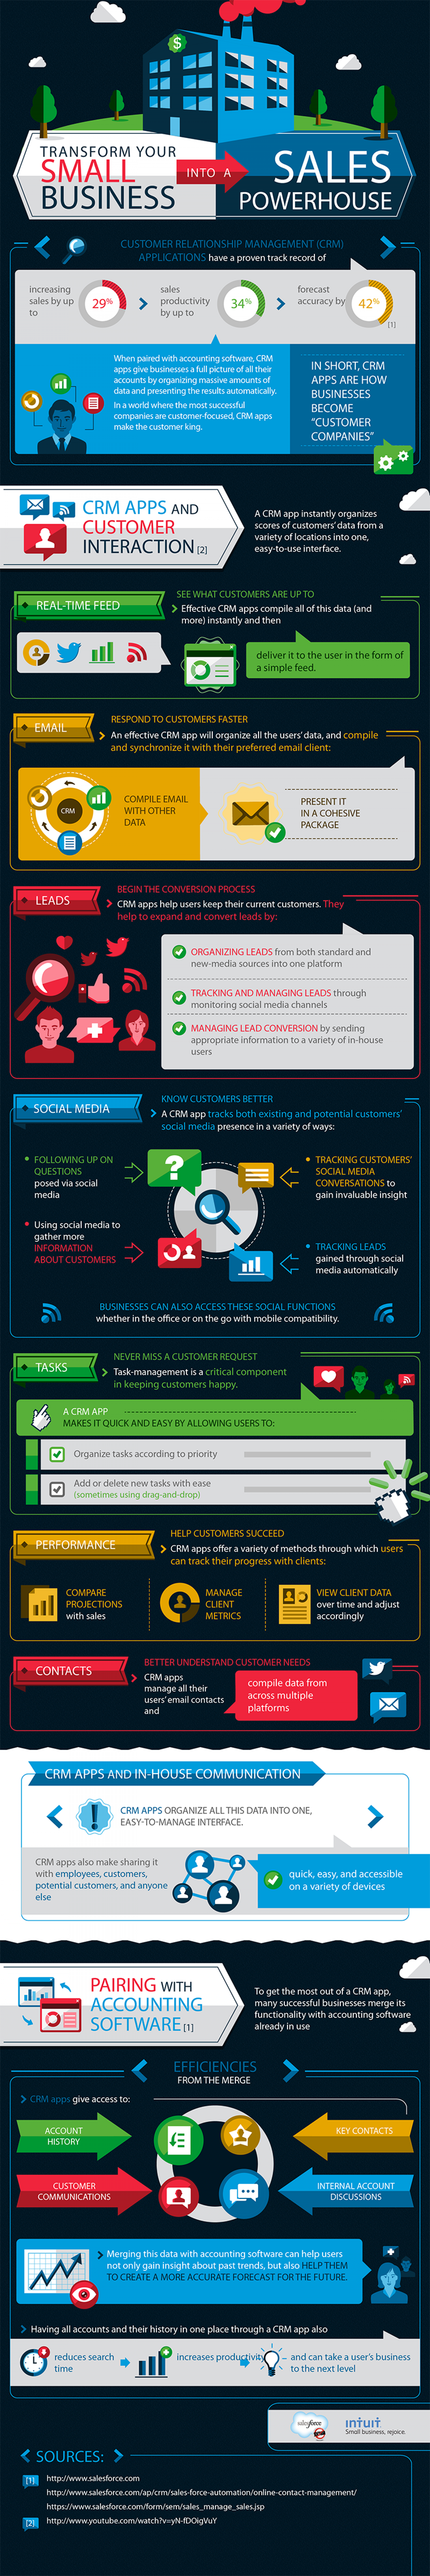 How Quickbooks + CRM can increase sales for your small business Infographic